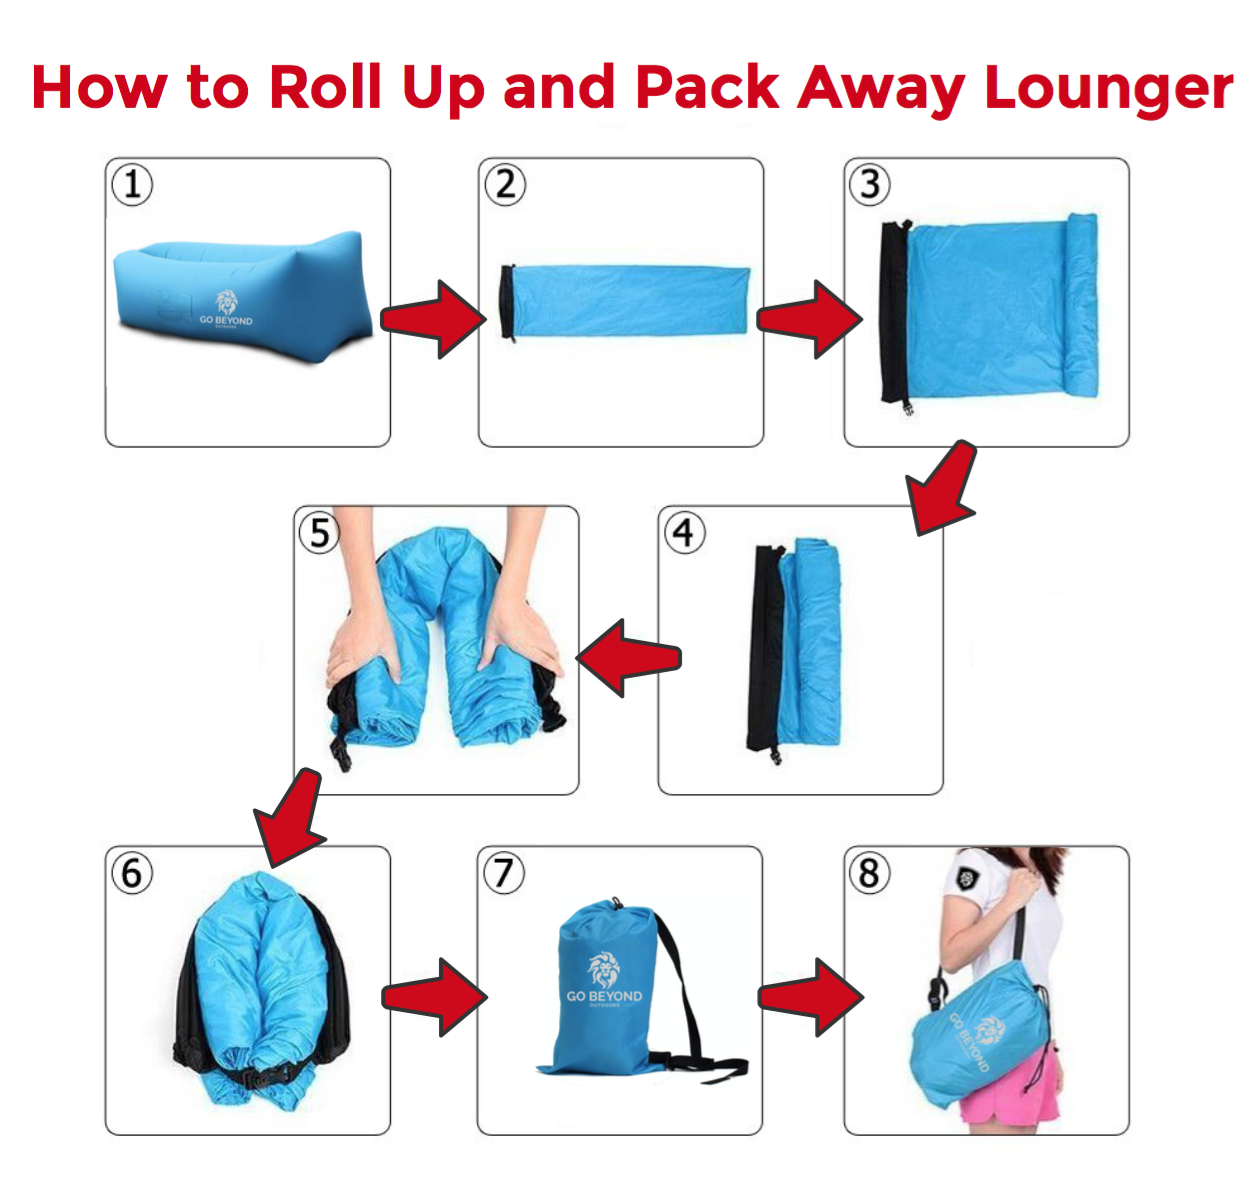 How to roll up and pack away inflatable lounger